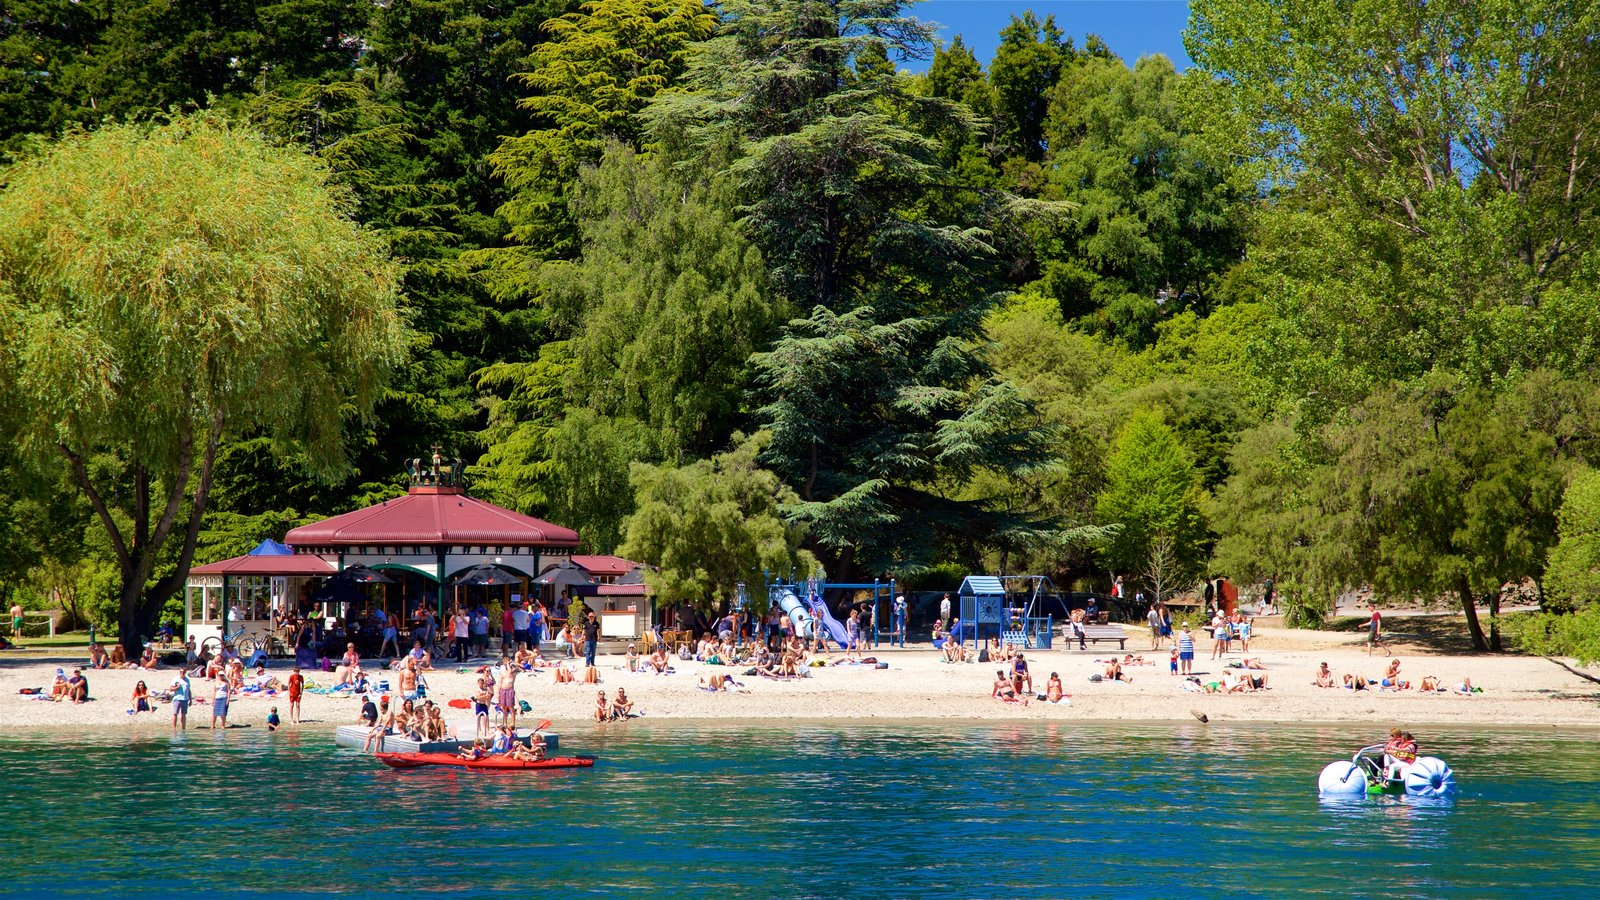 Queenstown Beach showing kayaking or canoeing, a lake or waterhole and boating